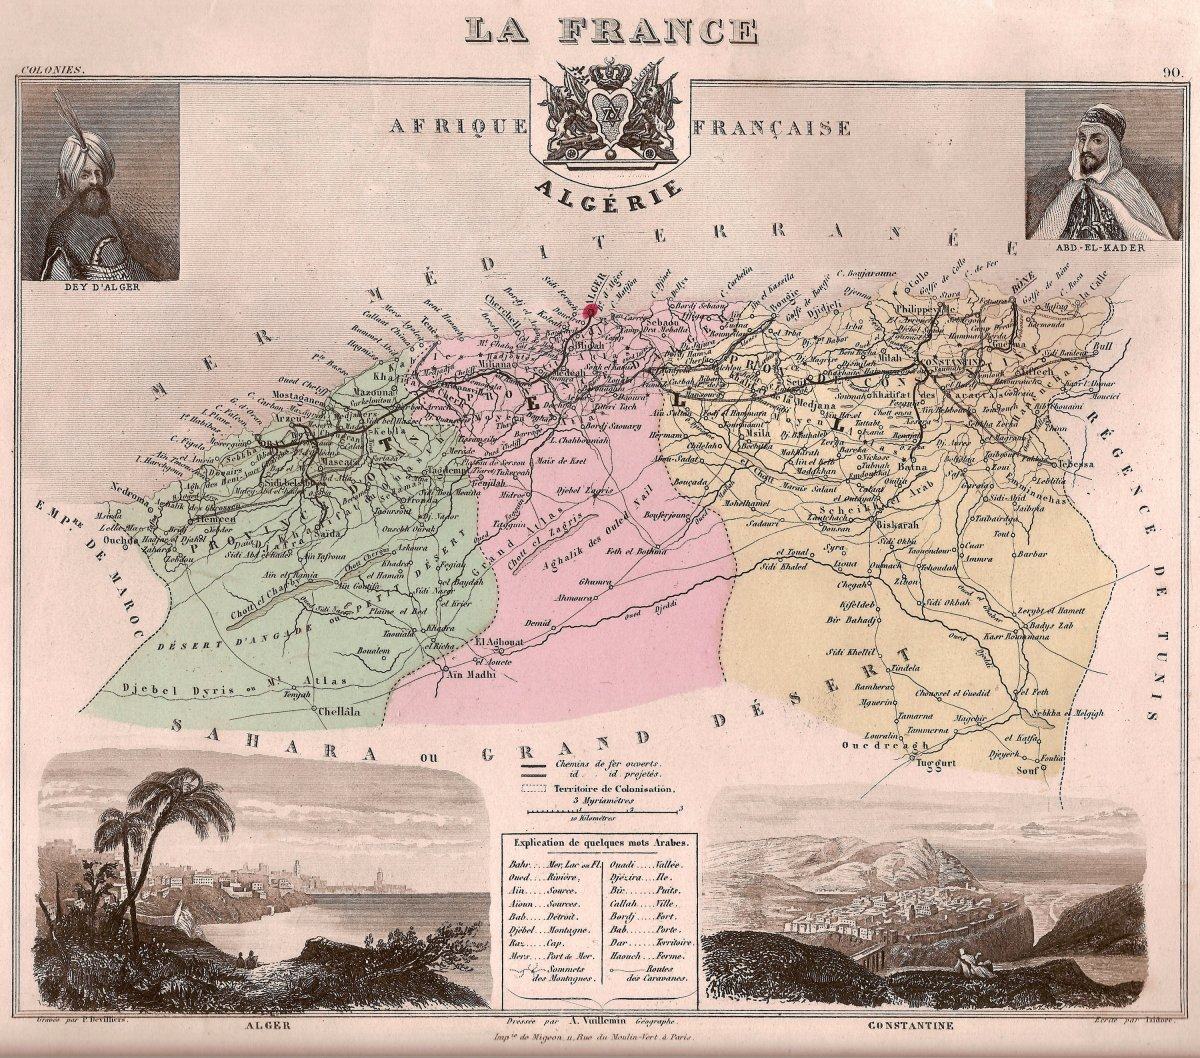 A map of French Algeria and French departments there.